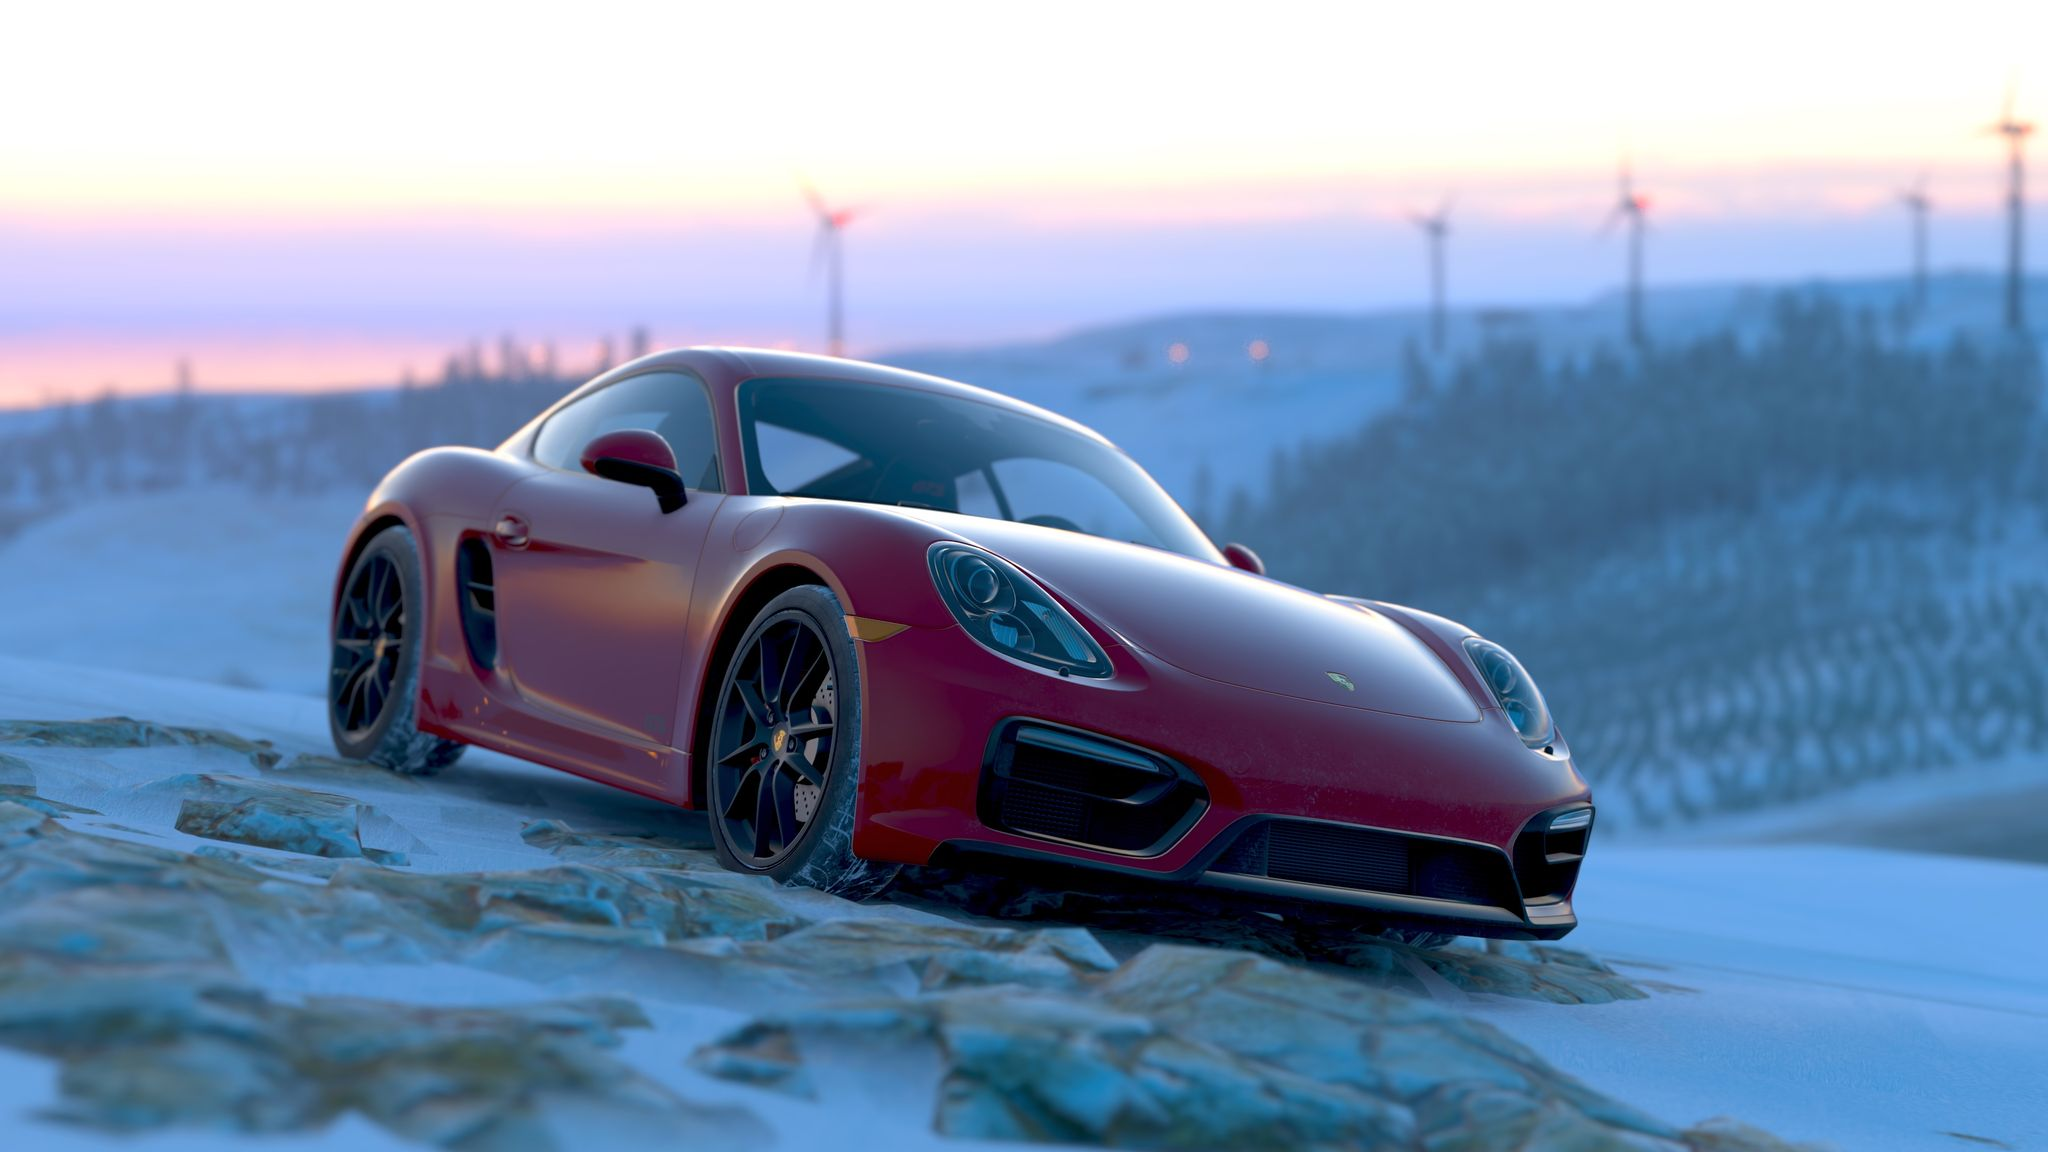 A screenshot that looks more like a photo of a red Porsche (I have NFI what sort, they all look the damn same) sitting on the top of a snowy hill, in the distance and out of focus is the sky just before sunrise, with a number of wind turbines along the hill in the distance.